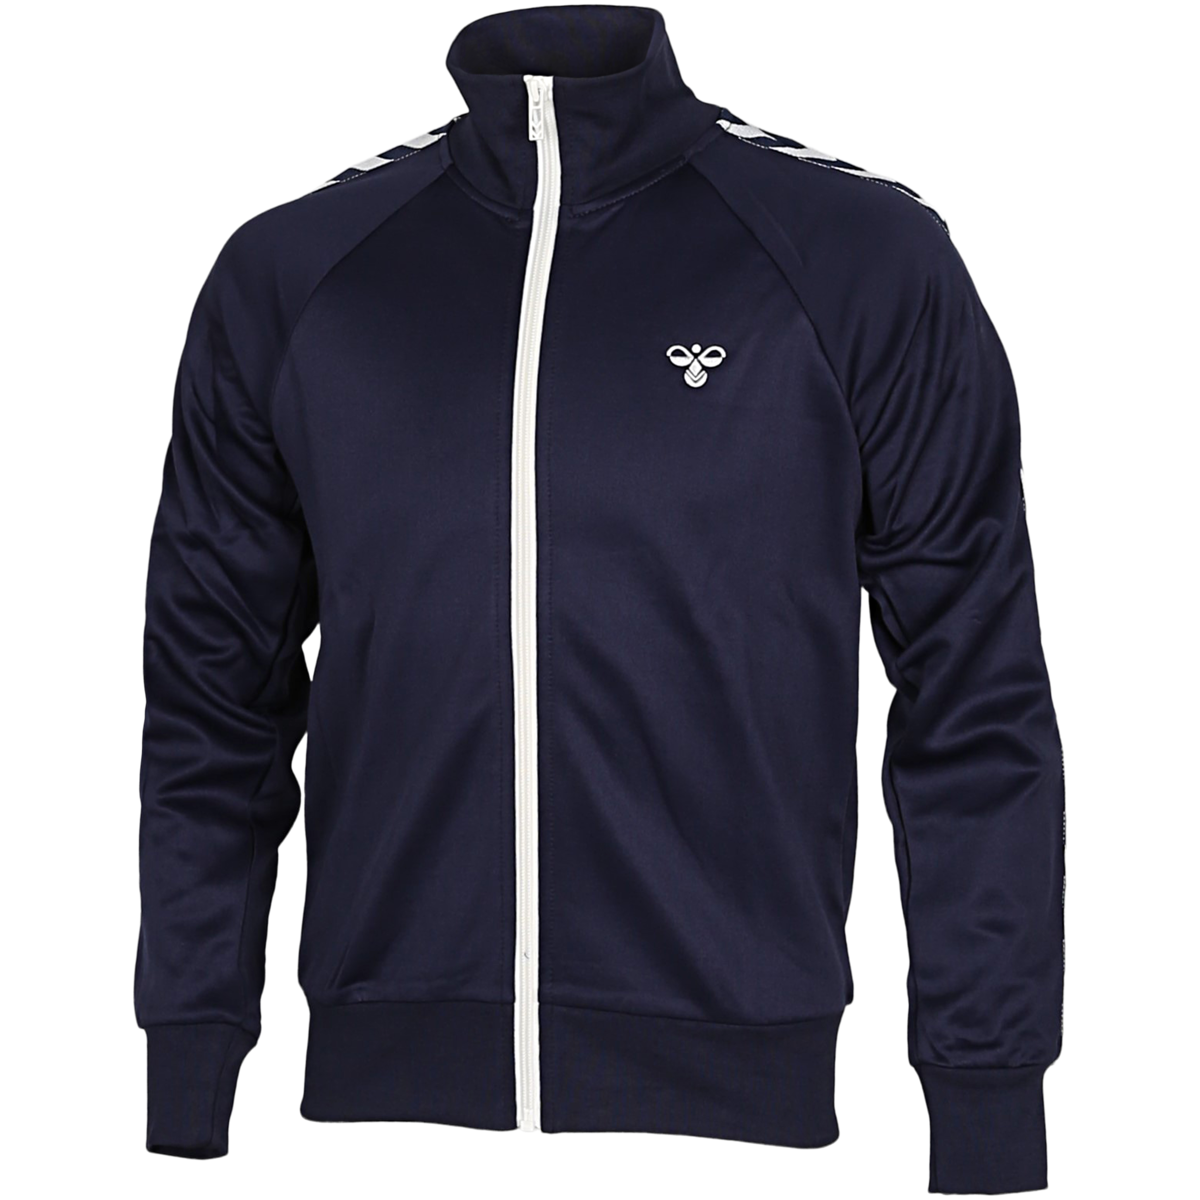 Hummel - Kick Zip Jacket - Navy